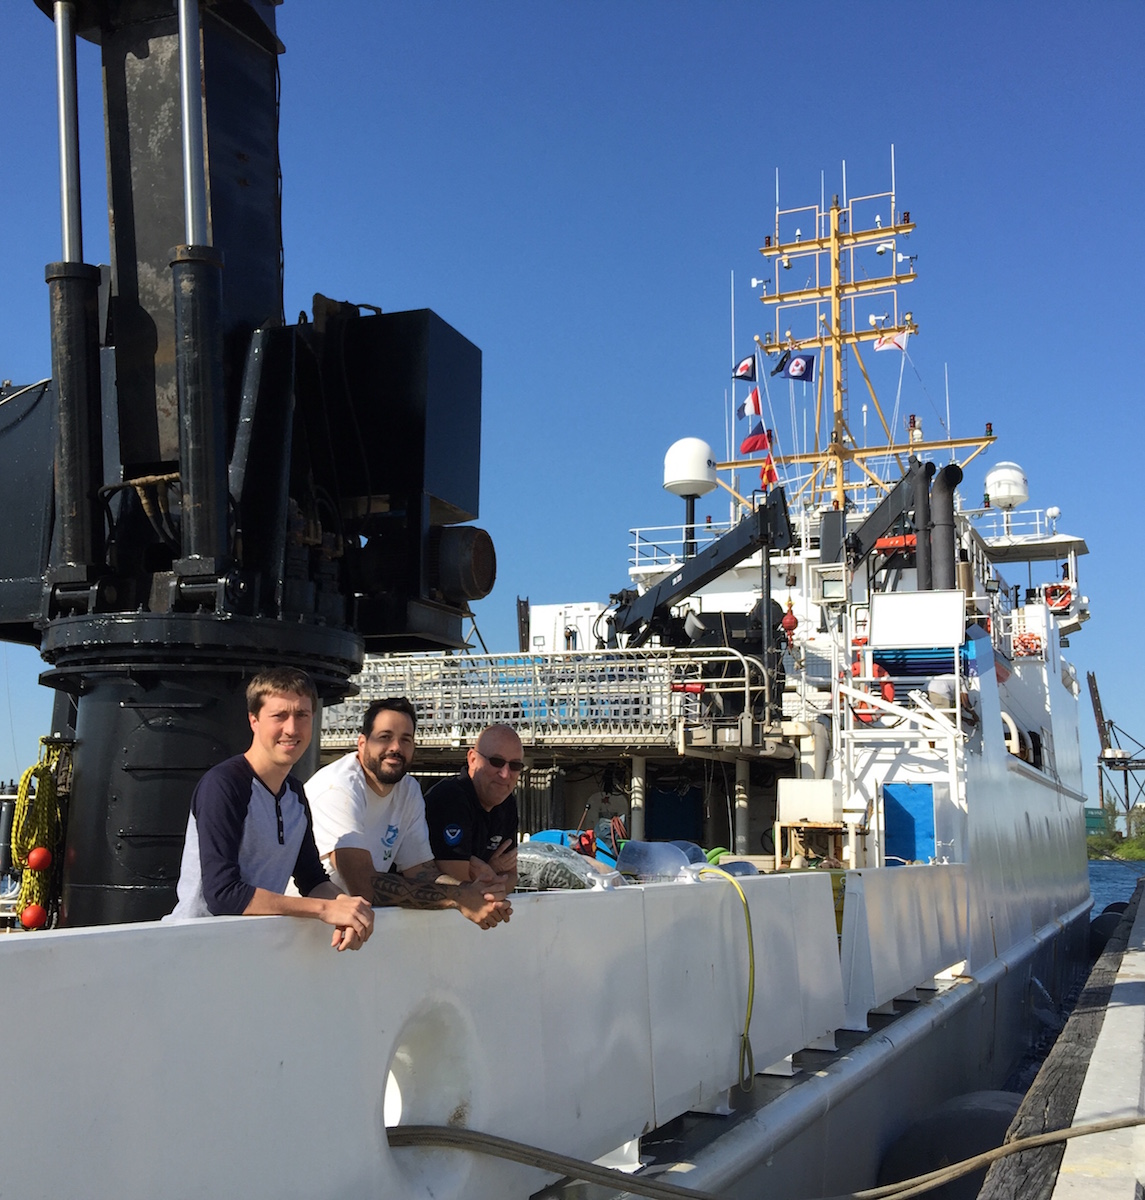 AOML oceanographers aboard the NOAA Ship Nancy Foster in Miami, FL. Image credit: NOAA